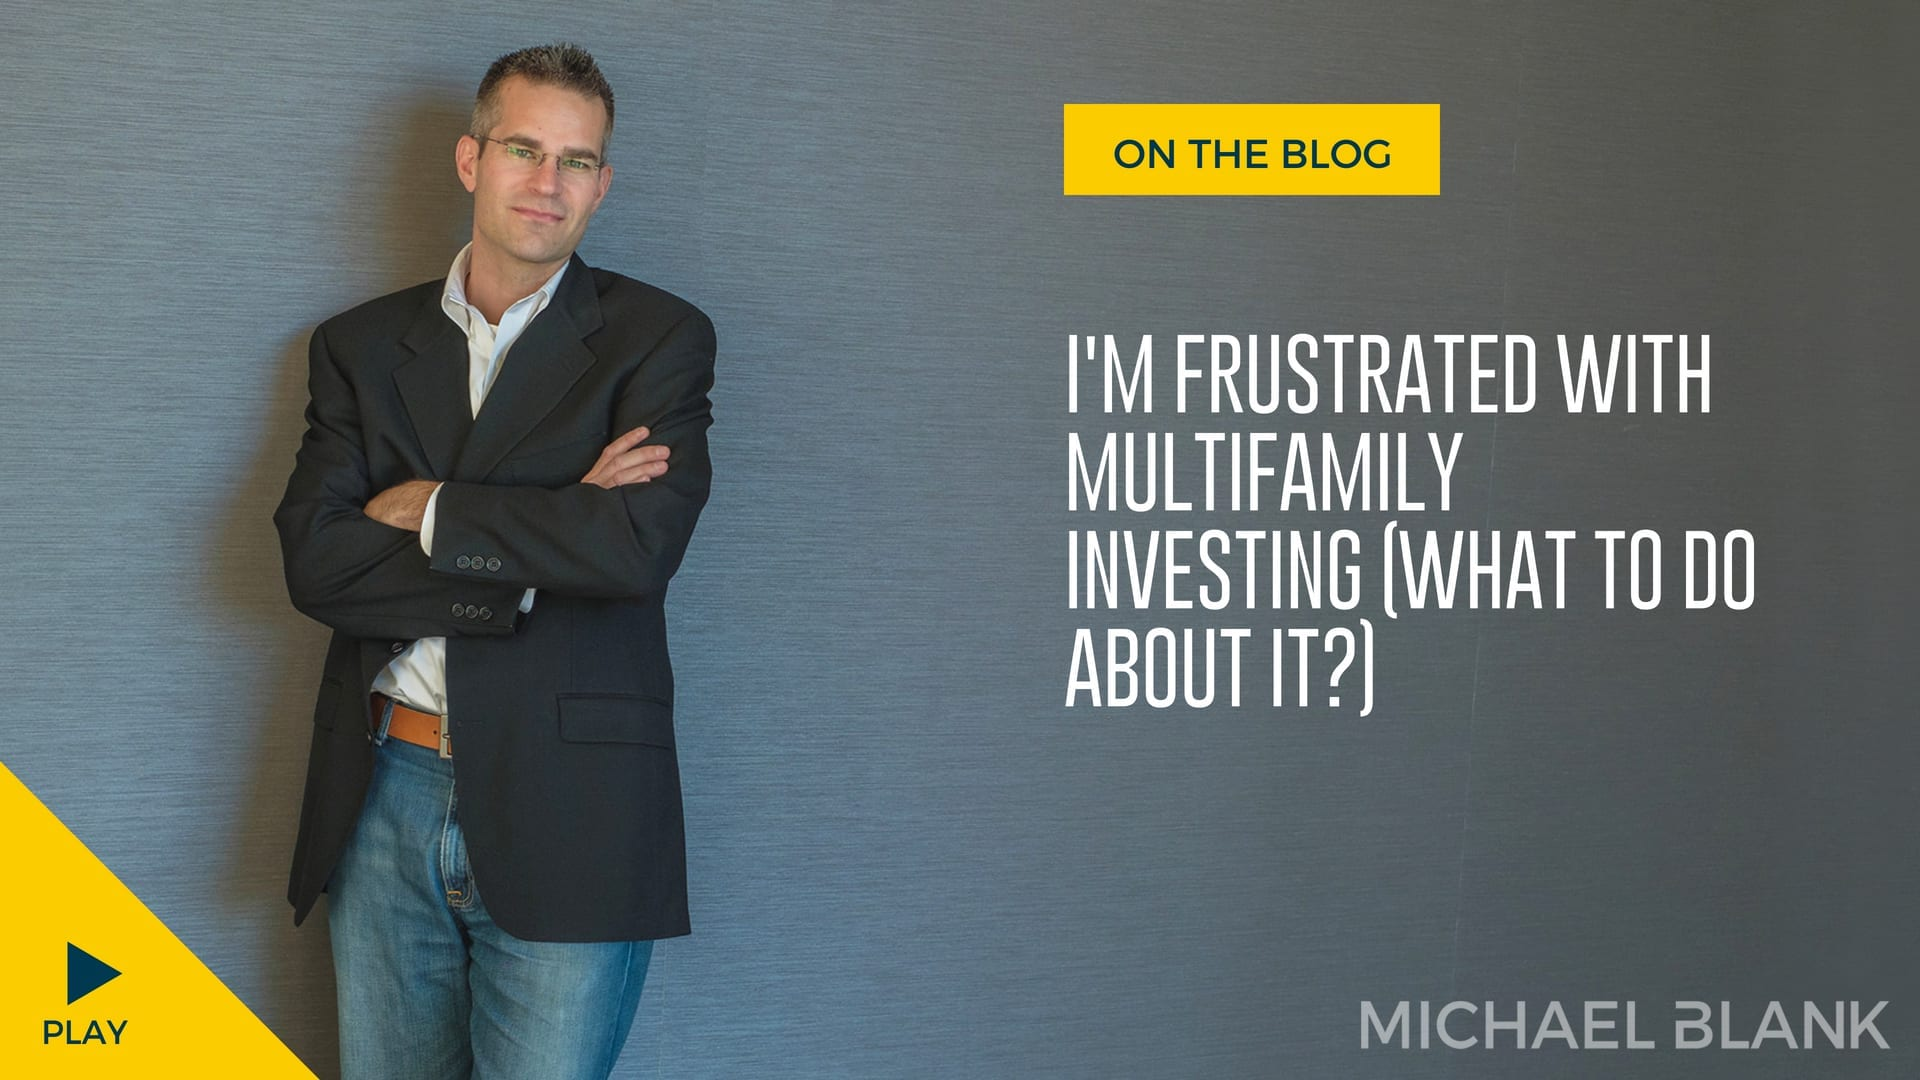 I'm Frustrated with Multifamily Investing (What To do About It?)